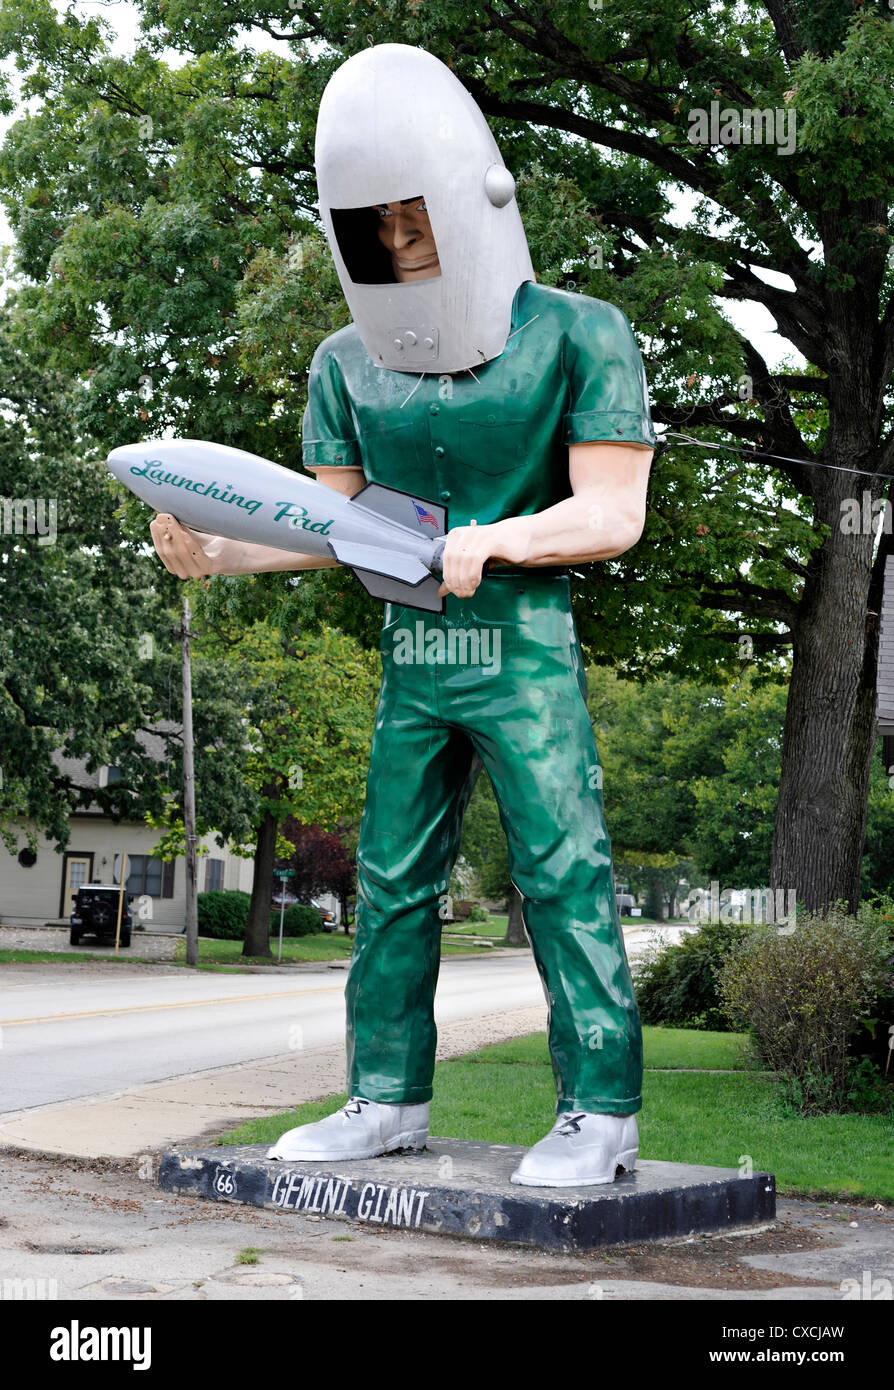 The Gemini Giant statue, or muffler man, on Route 66 Wilmington Illinois - Stock Image